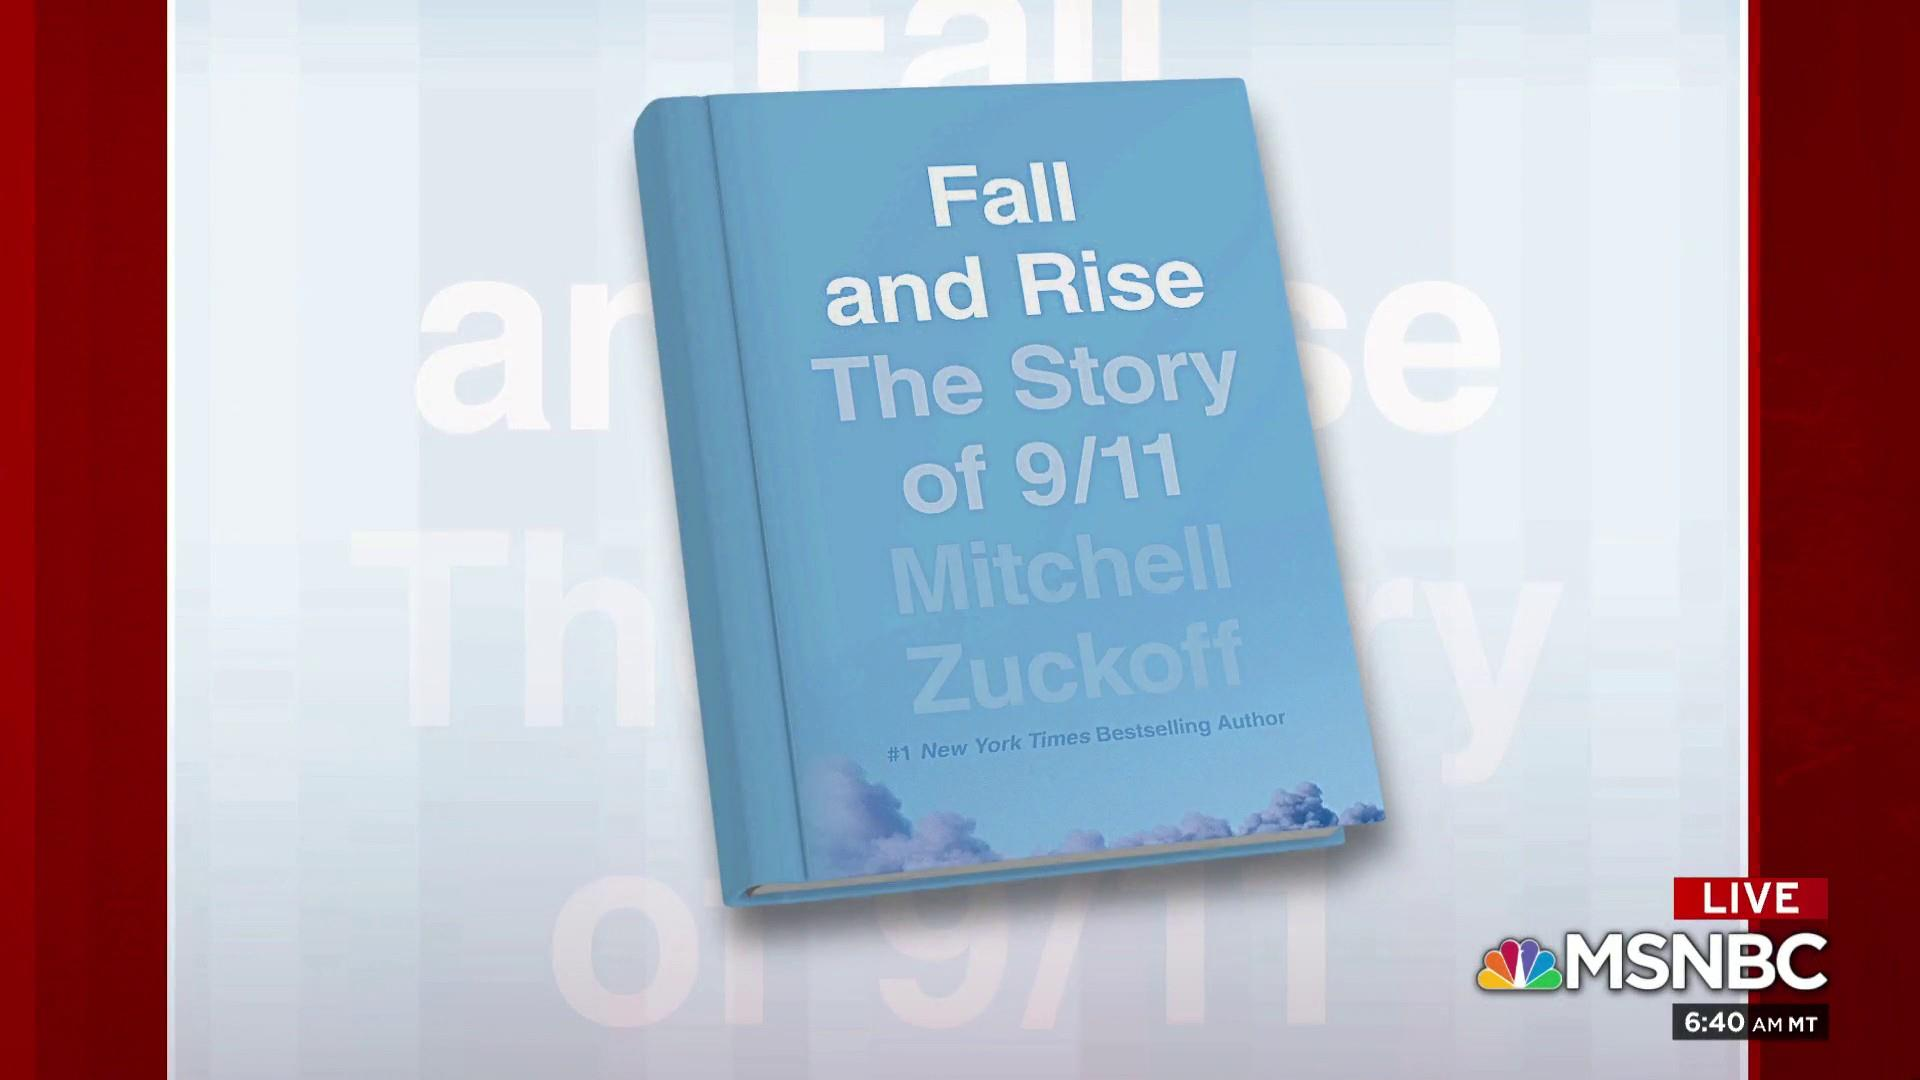 'Fall and Rise' chronicles stories from 9/11